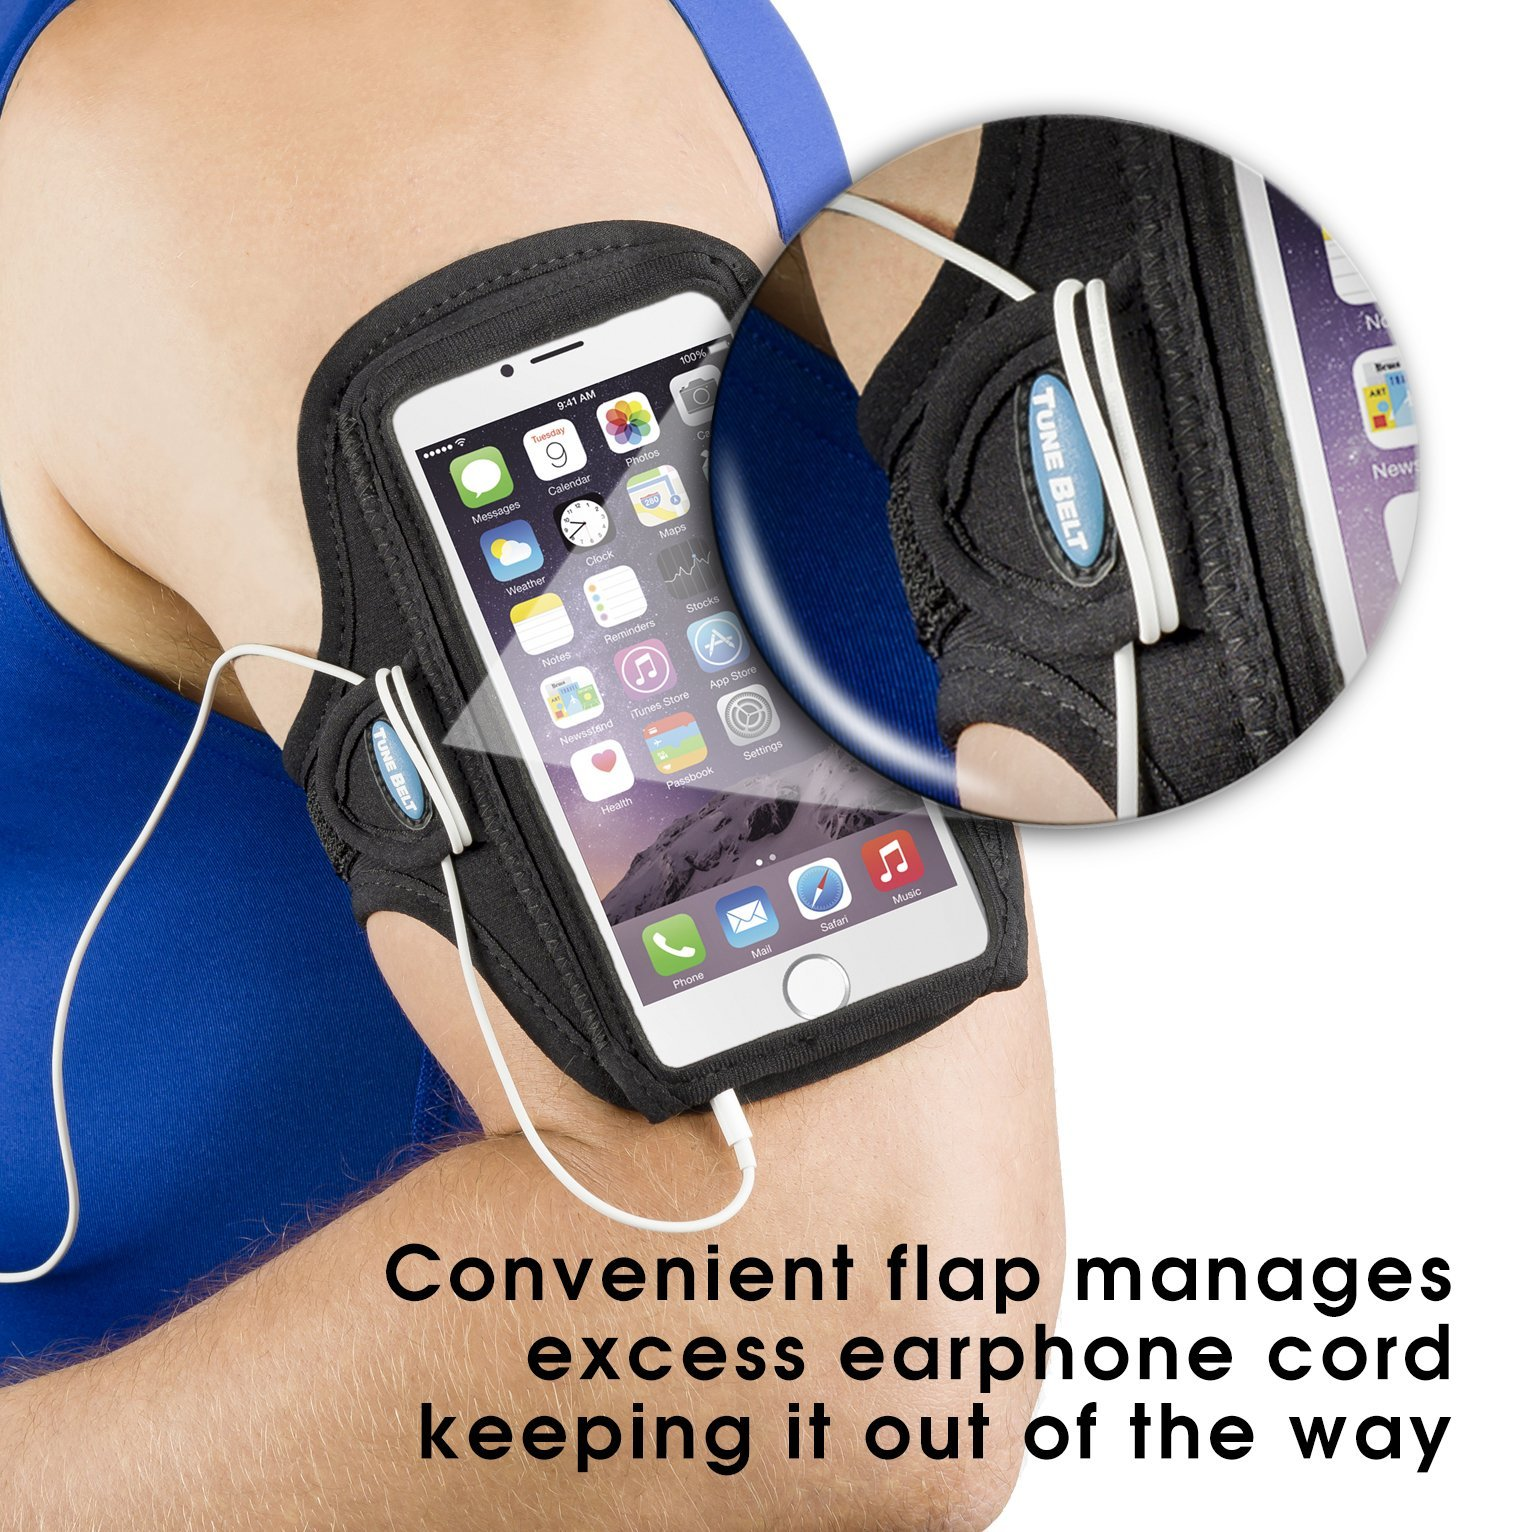 Armband for iPhone 6 6s 7 8 Plus, Samsung Galaxy Note 8 and S8 Plus - for Running, Jogging & Working Out - Water Resistant - for Women & Men [Black] See Fit Details by Tune Belt (Image #4)